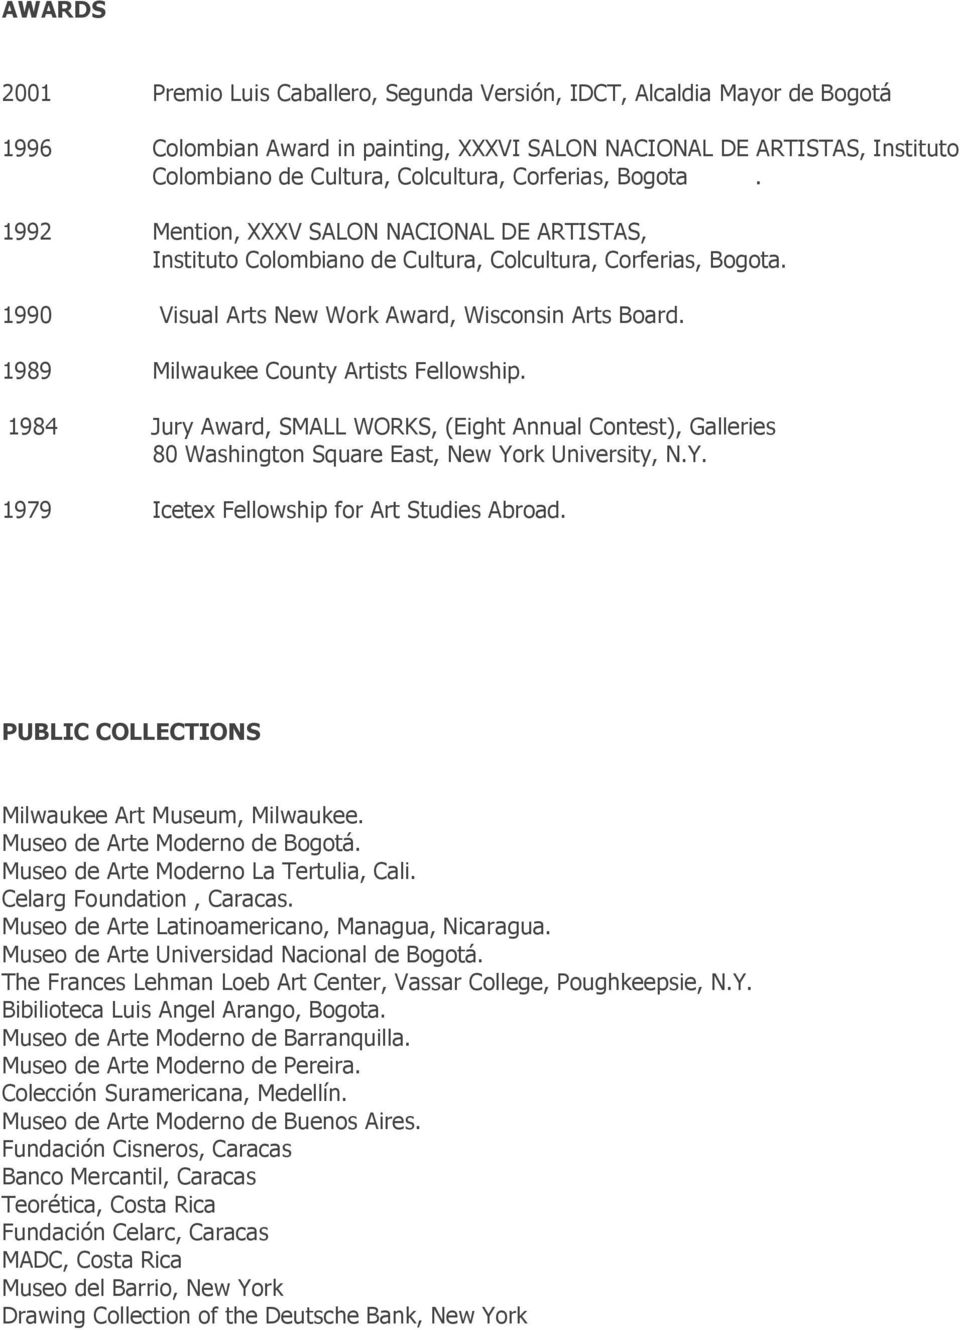 1989 Milwaukee County Artists Fellowship. 1984 Jury Award, SMALL WORKS, (Eight Annual Contest), Galleries 80 Washington Square East, New York University, N.Y. 1979 Icetex Fellowship for Art Studies Abroad.